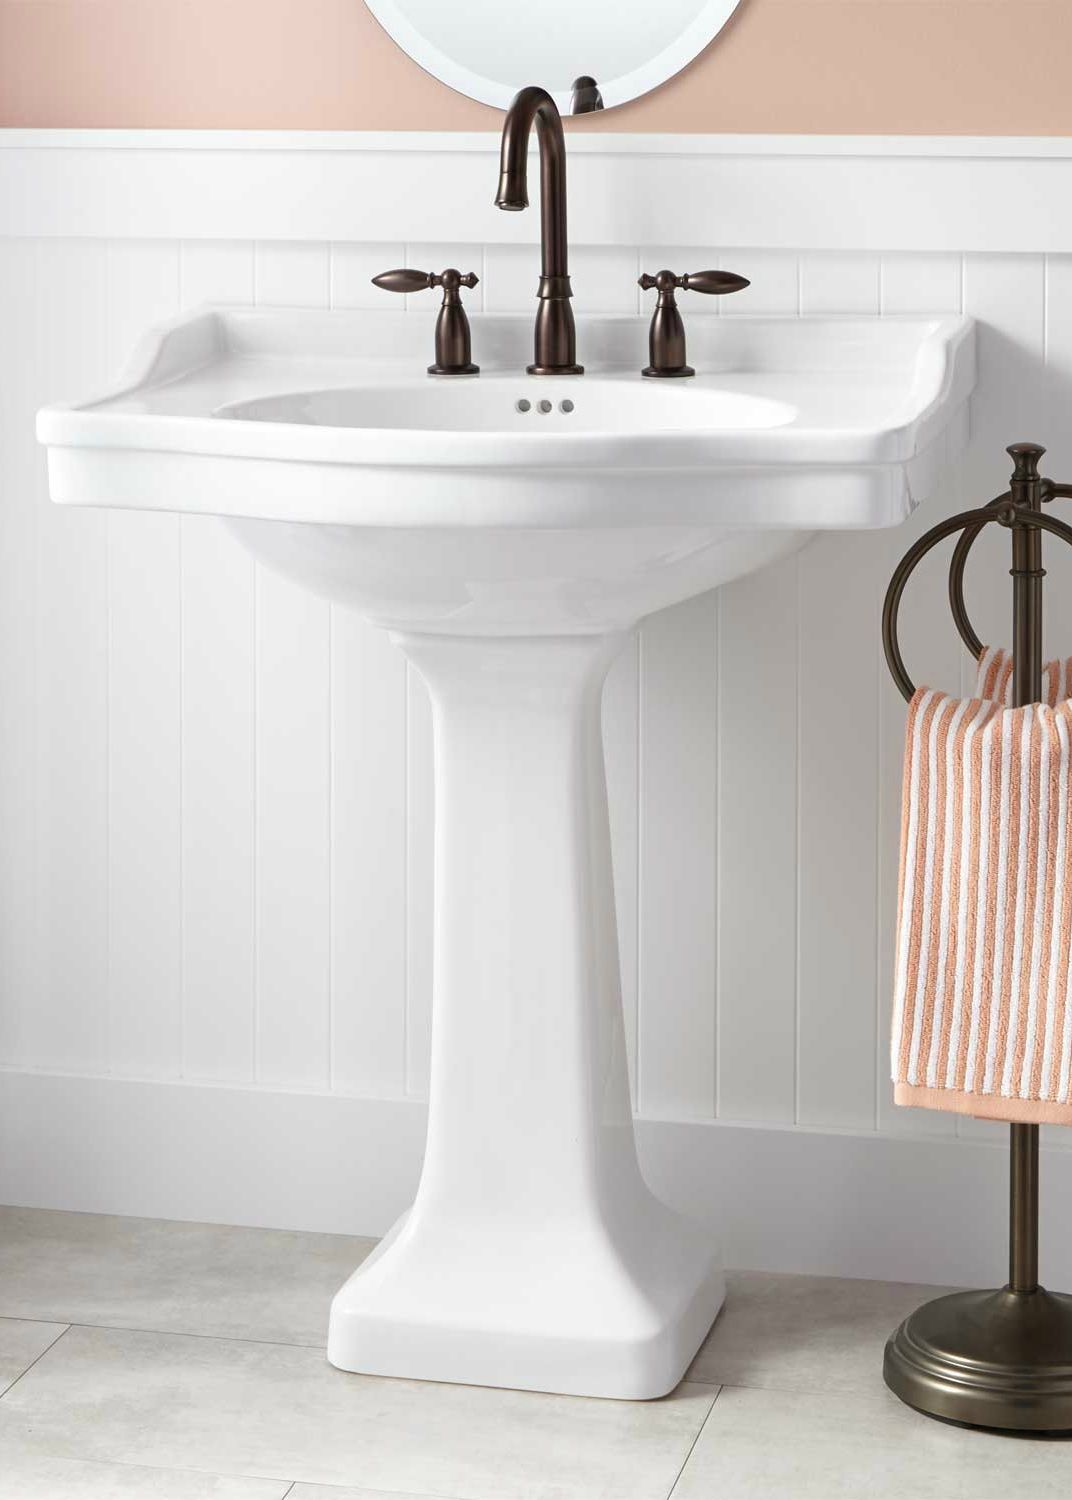 This Oversized Pedestal Sink Features A Large Basin Top With